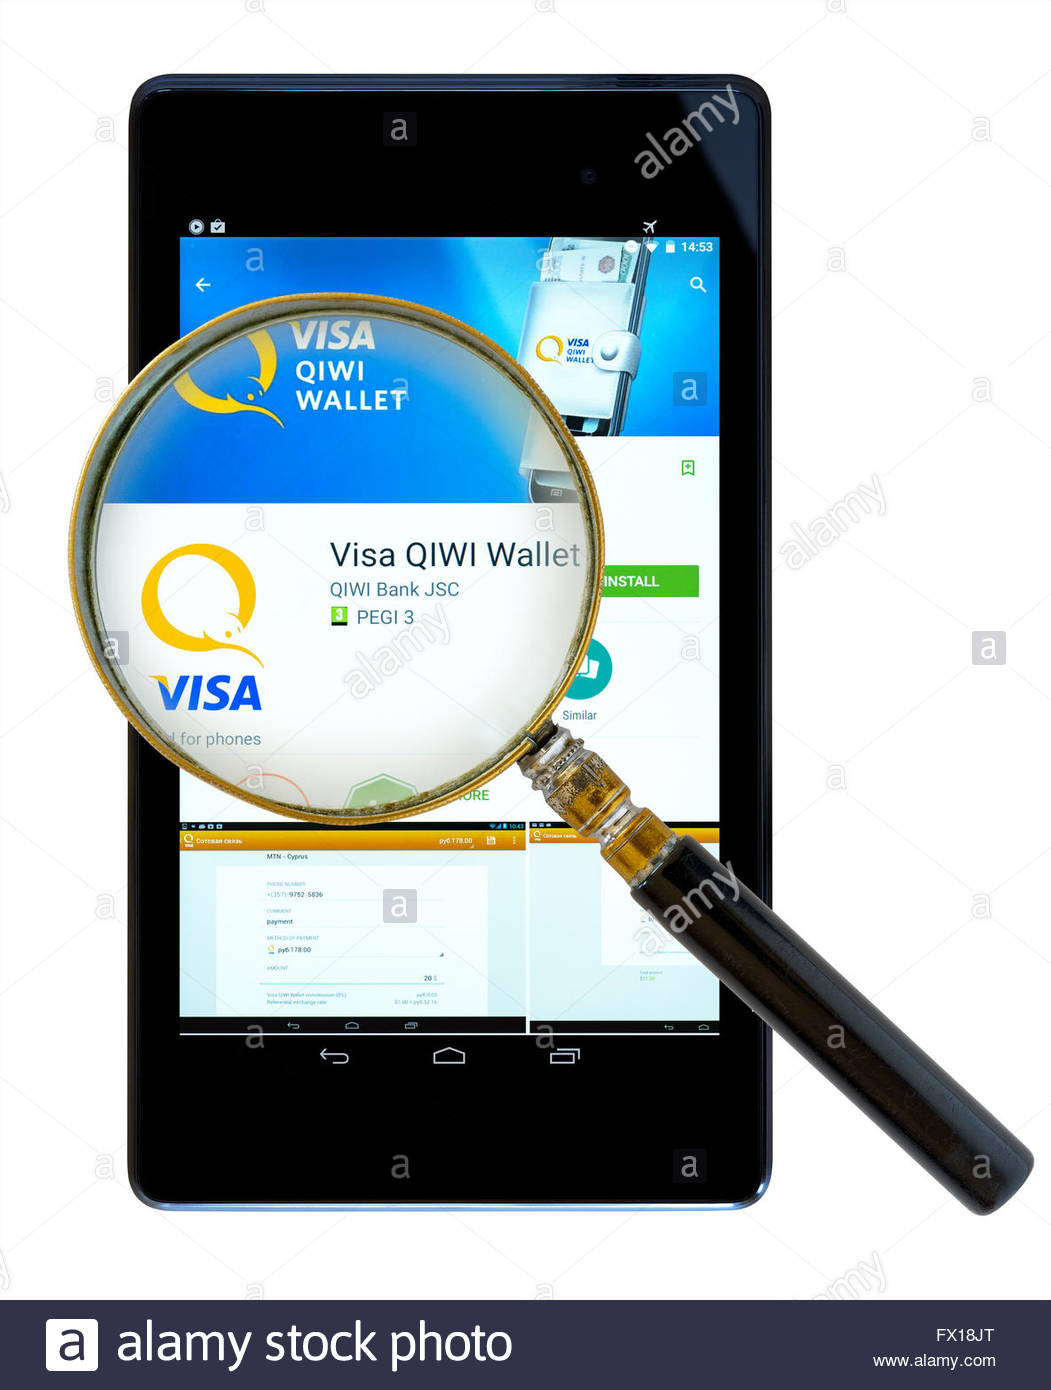 Visa QIWI Wallet app on an android tablet PC, Dorset, England, UK